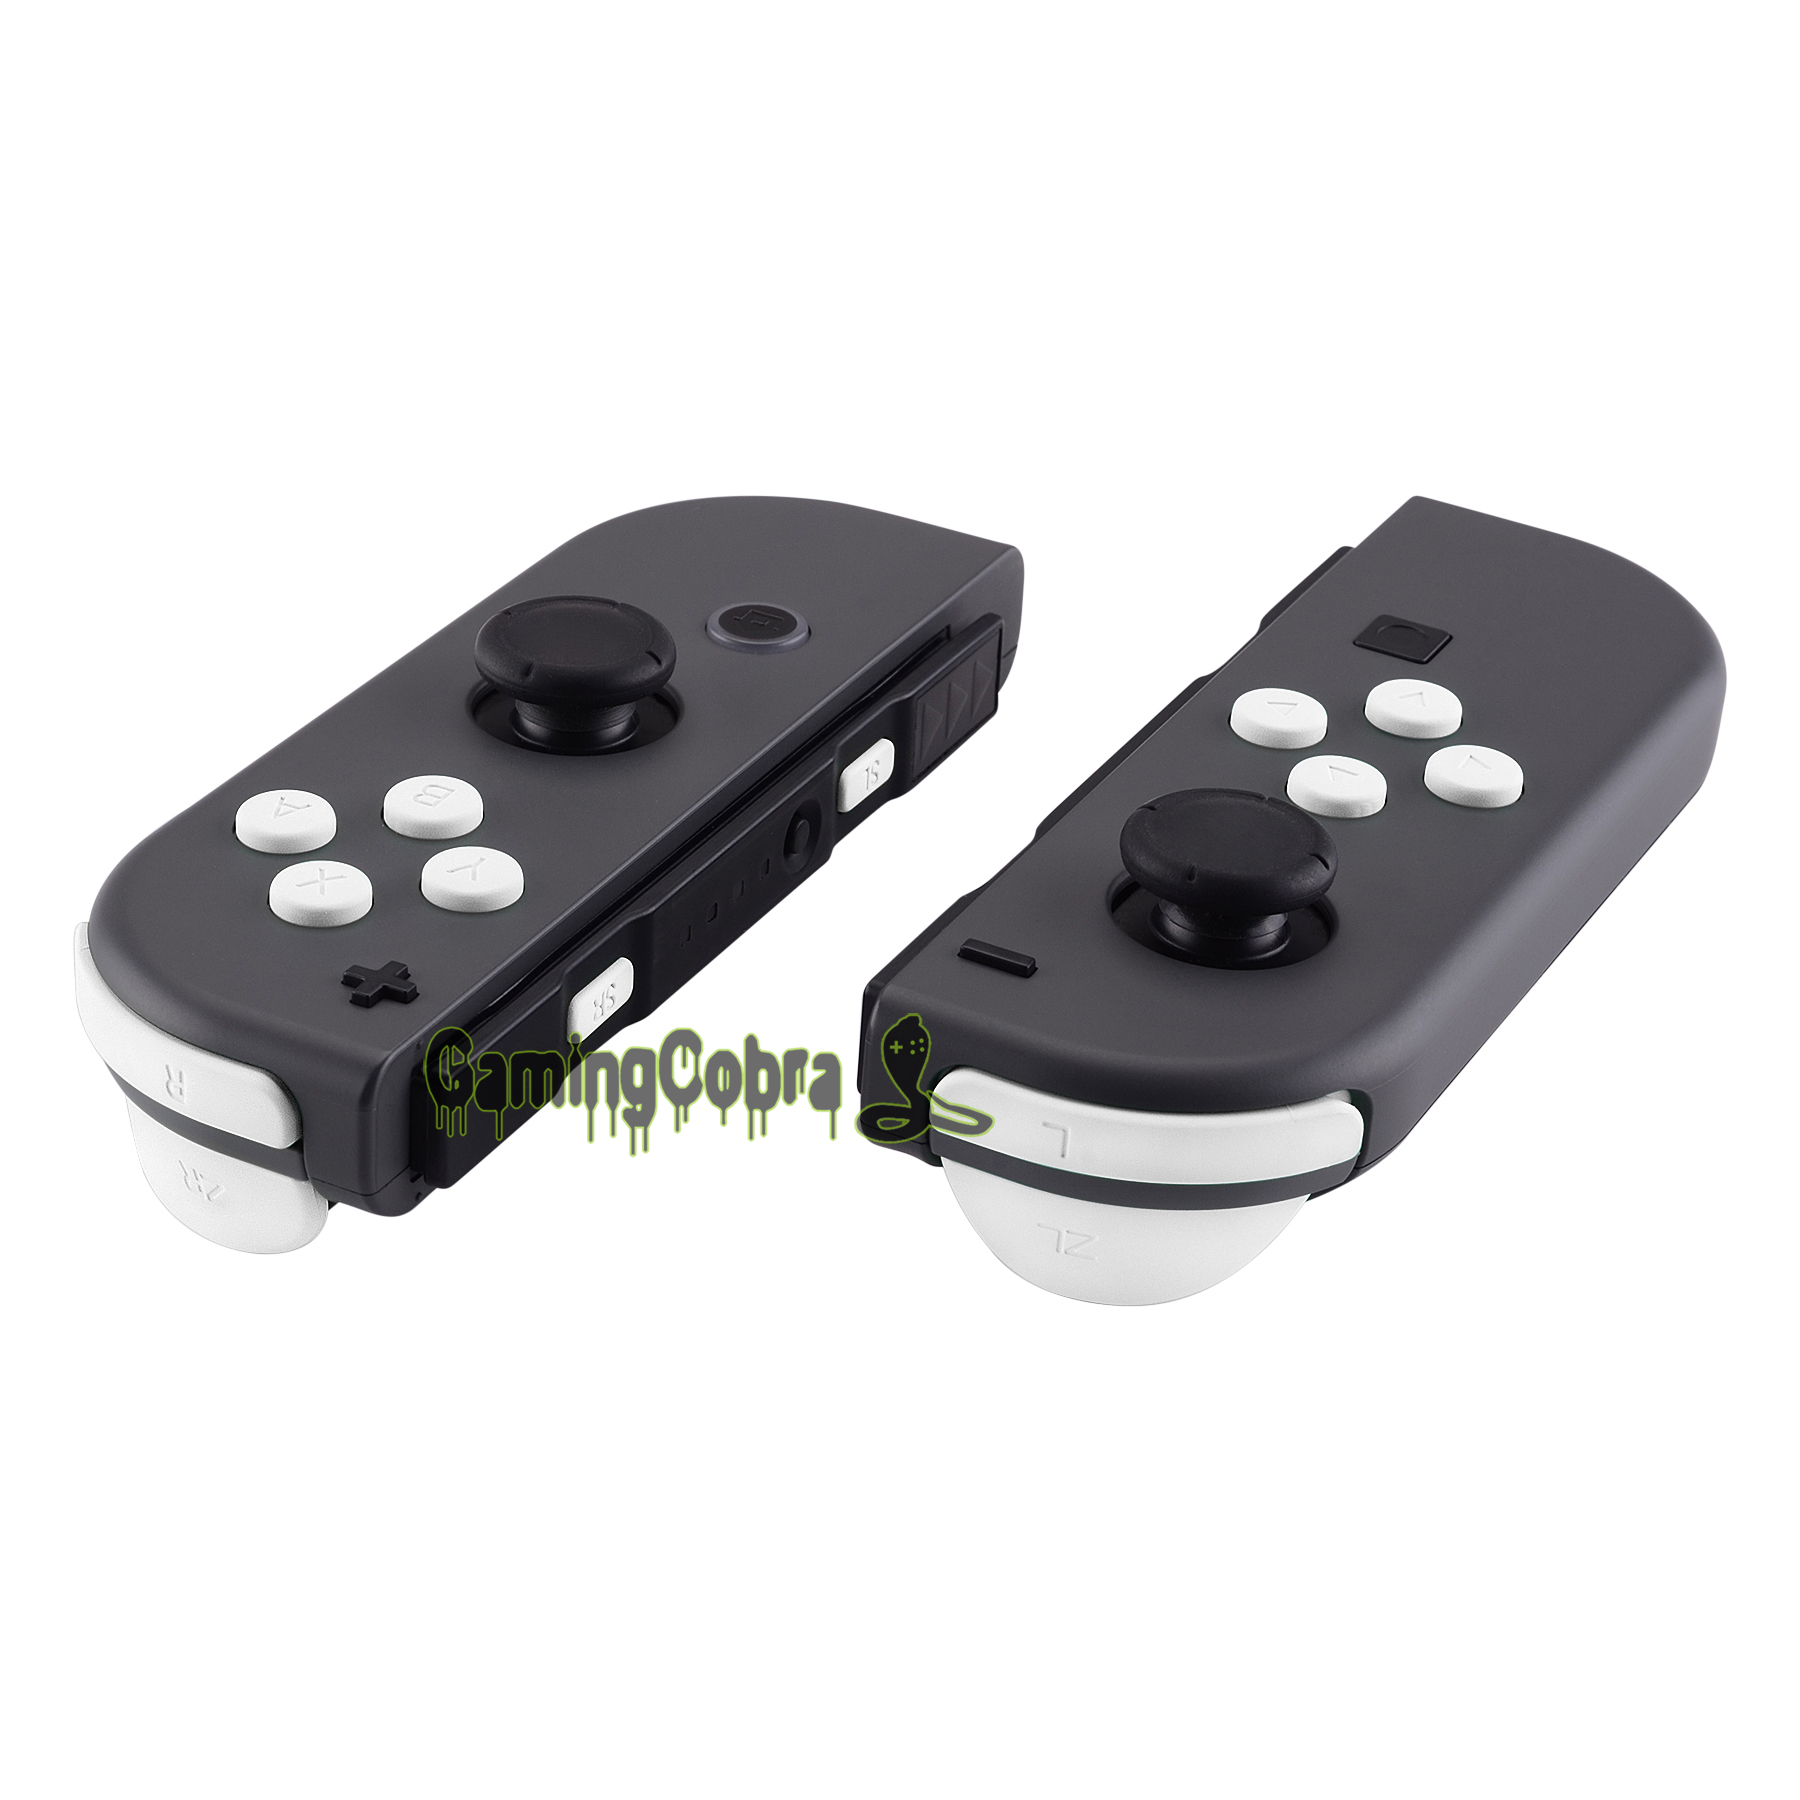 Soft Touch White Replacement ABXY Direction Keys SR SL L R ZR ZL Trigger Full Set Buttons W/ Tools For Nintendo Switch Joy-Con